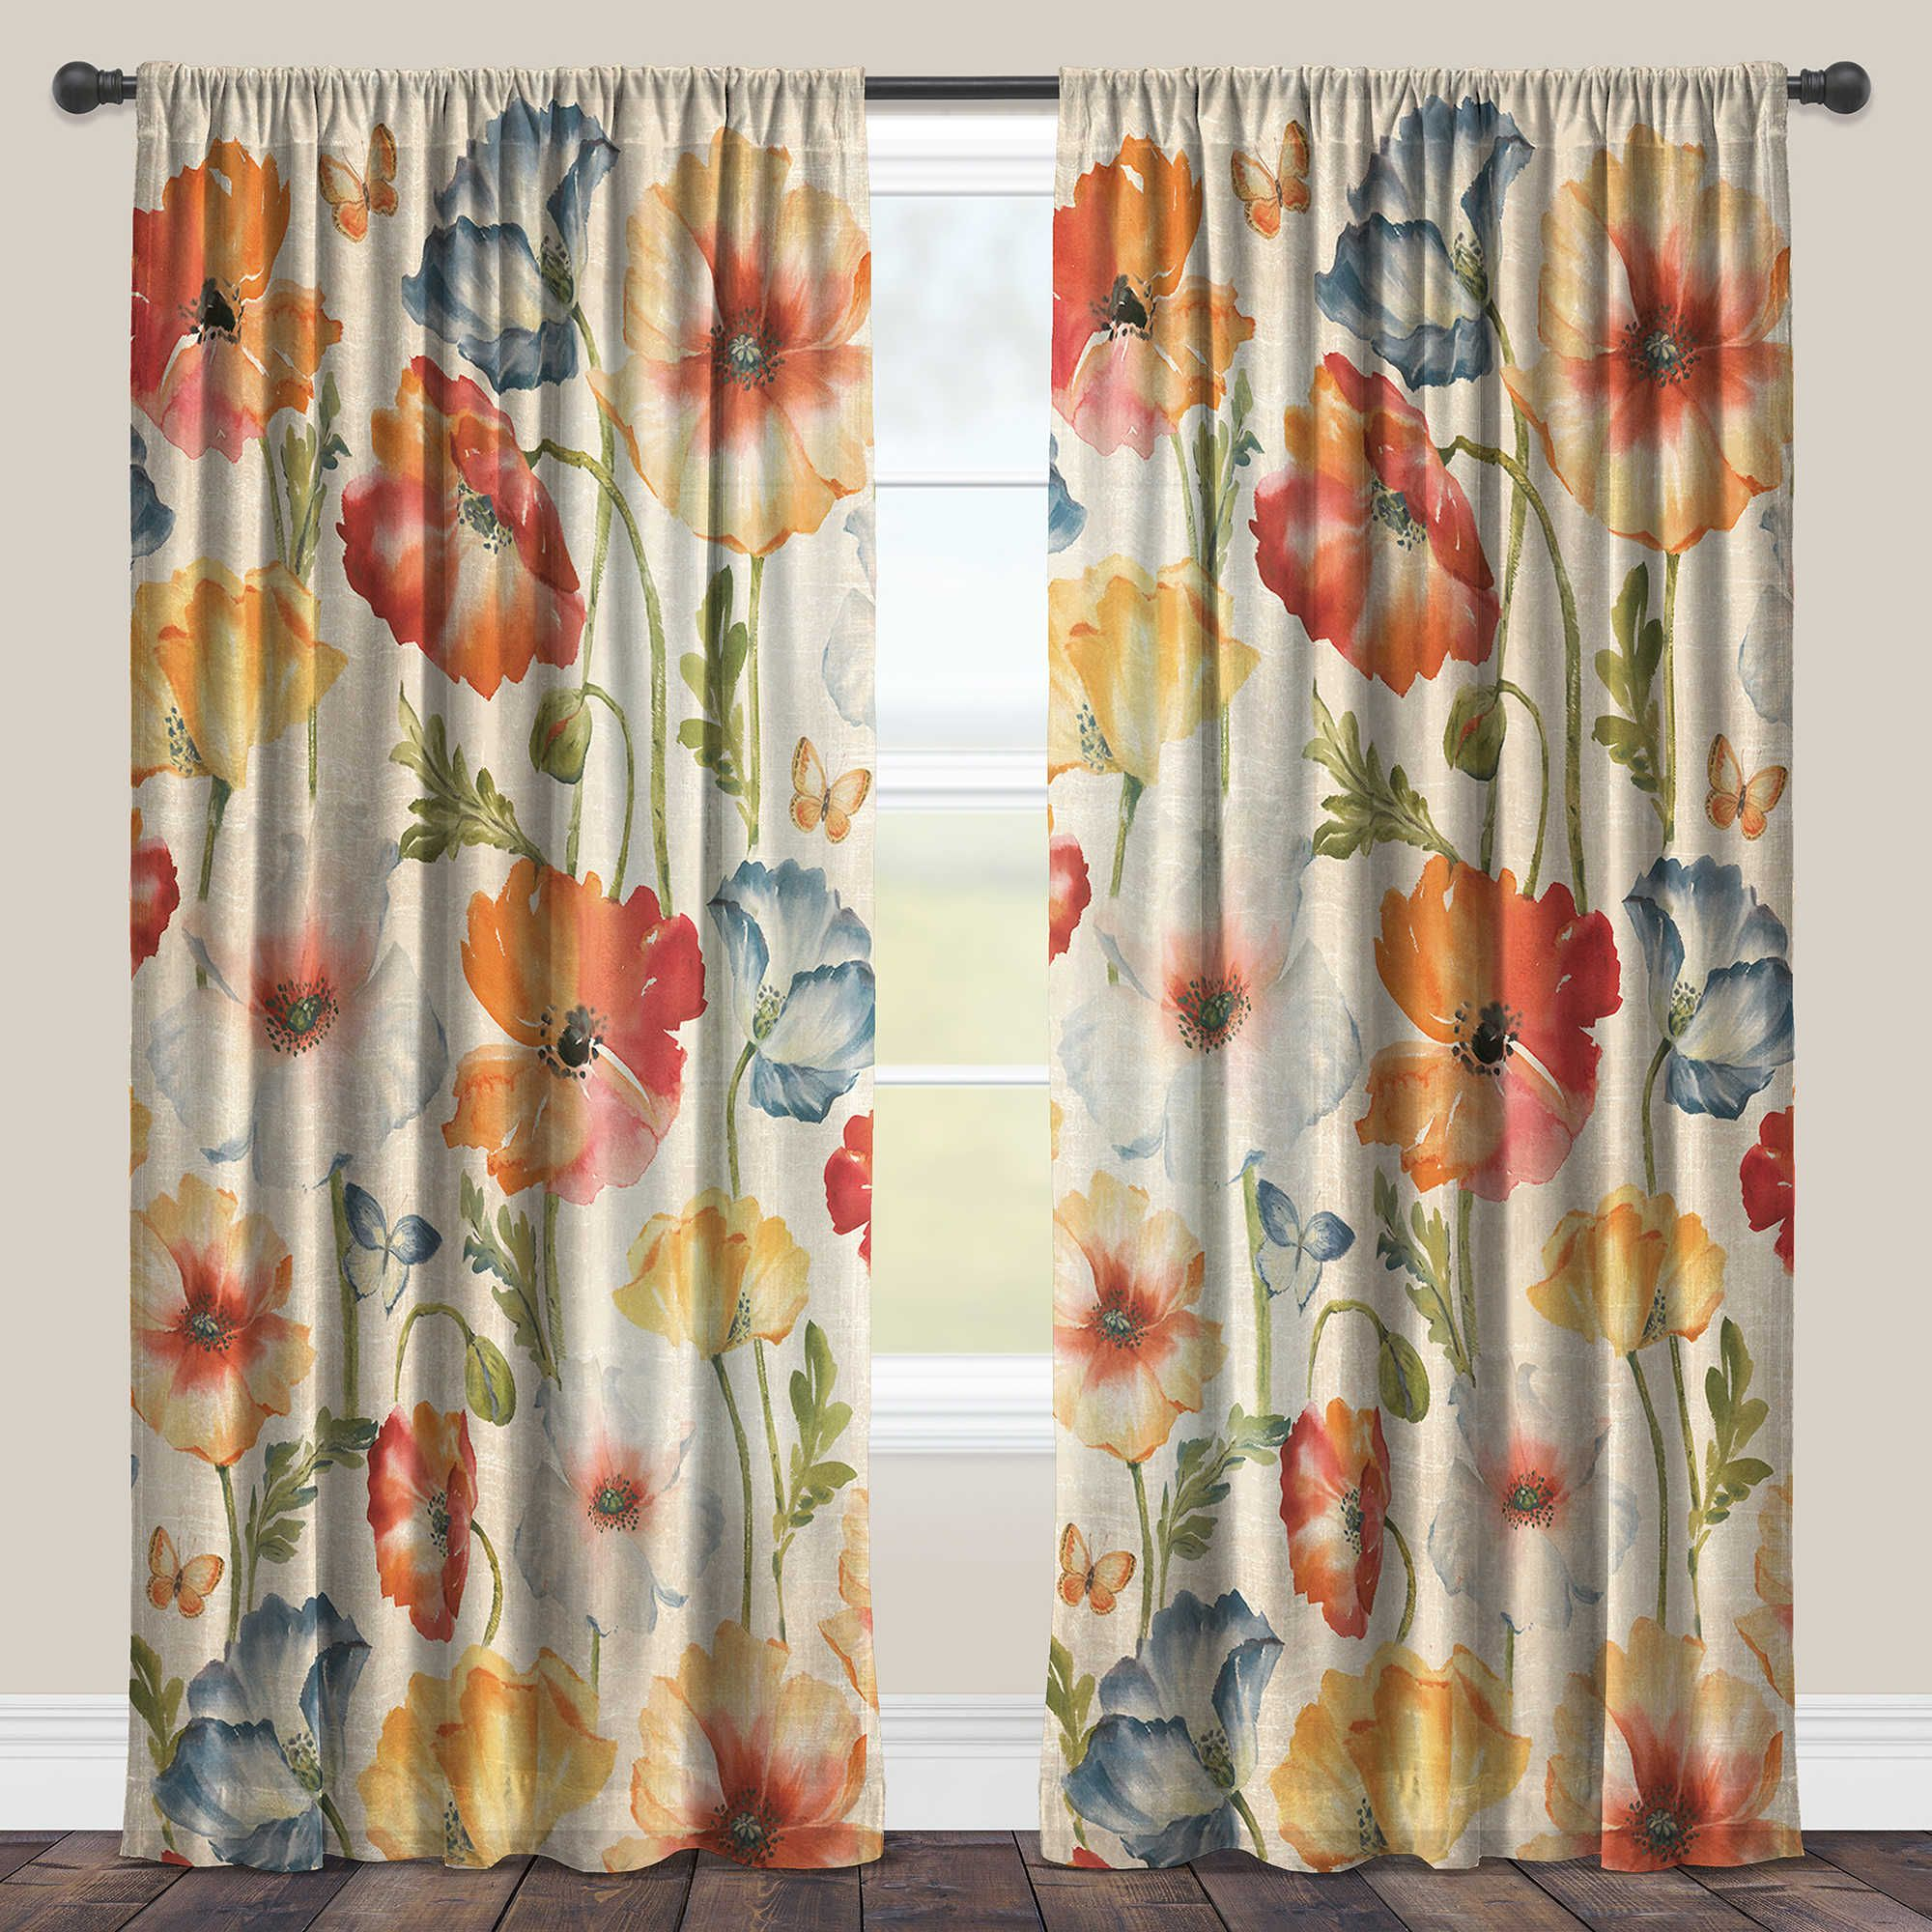 Laural Home Watercolor Poppies Rod Pocket Sheer Window Curtain